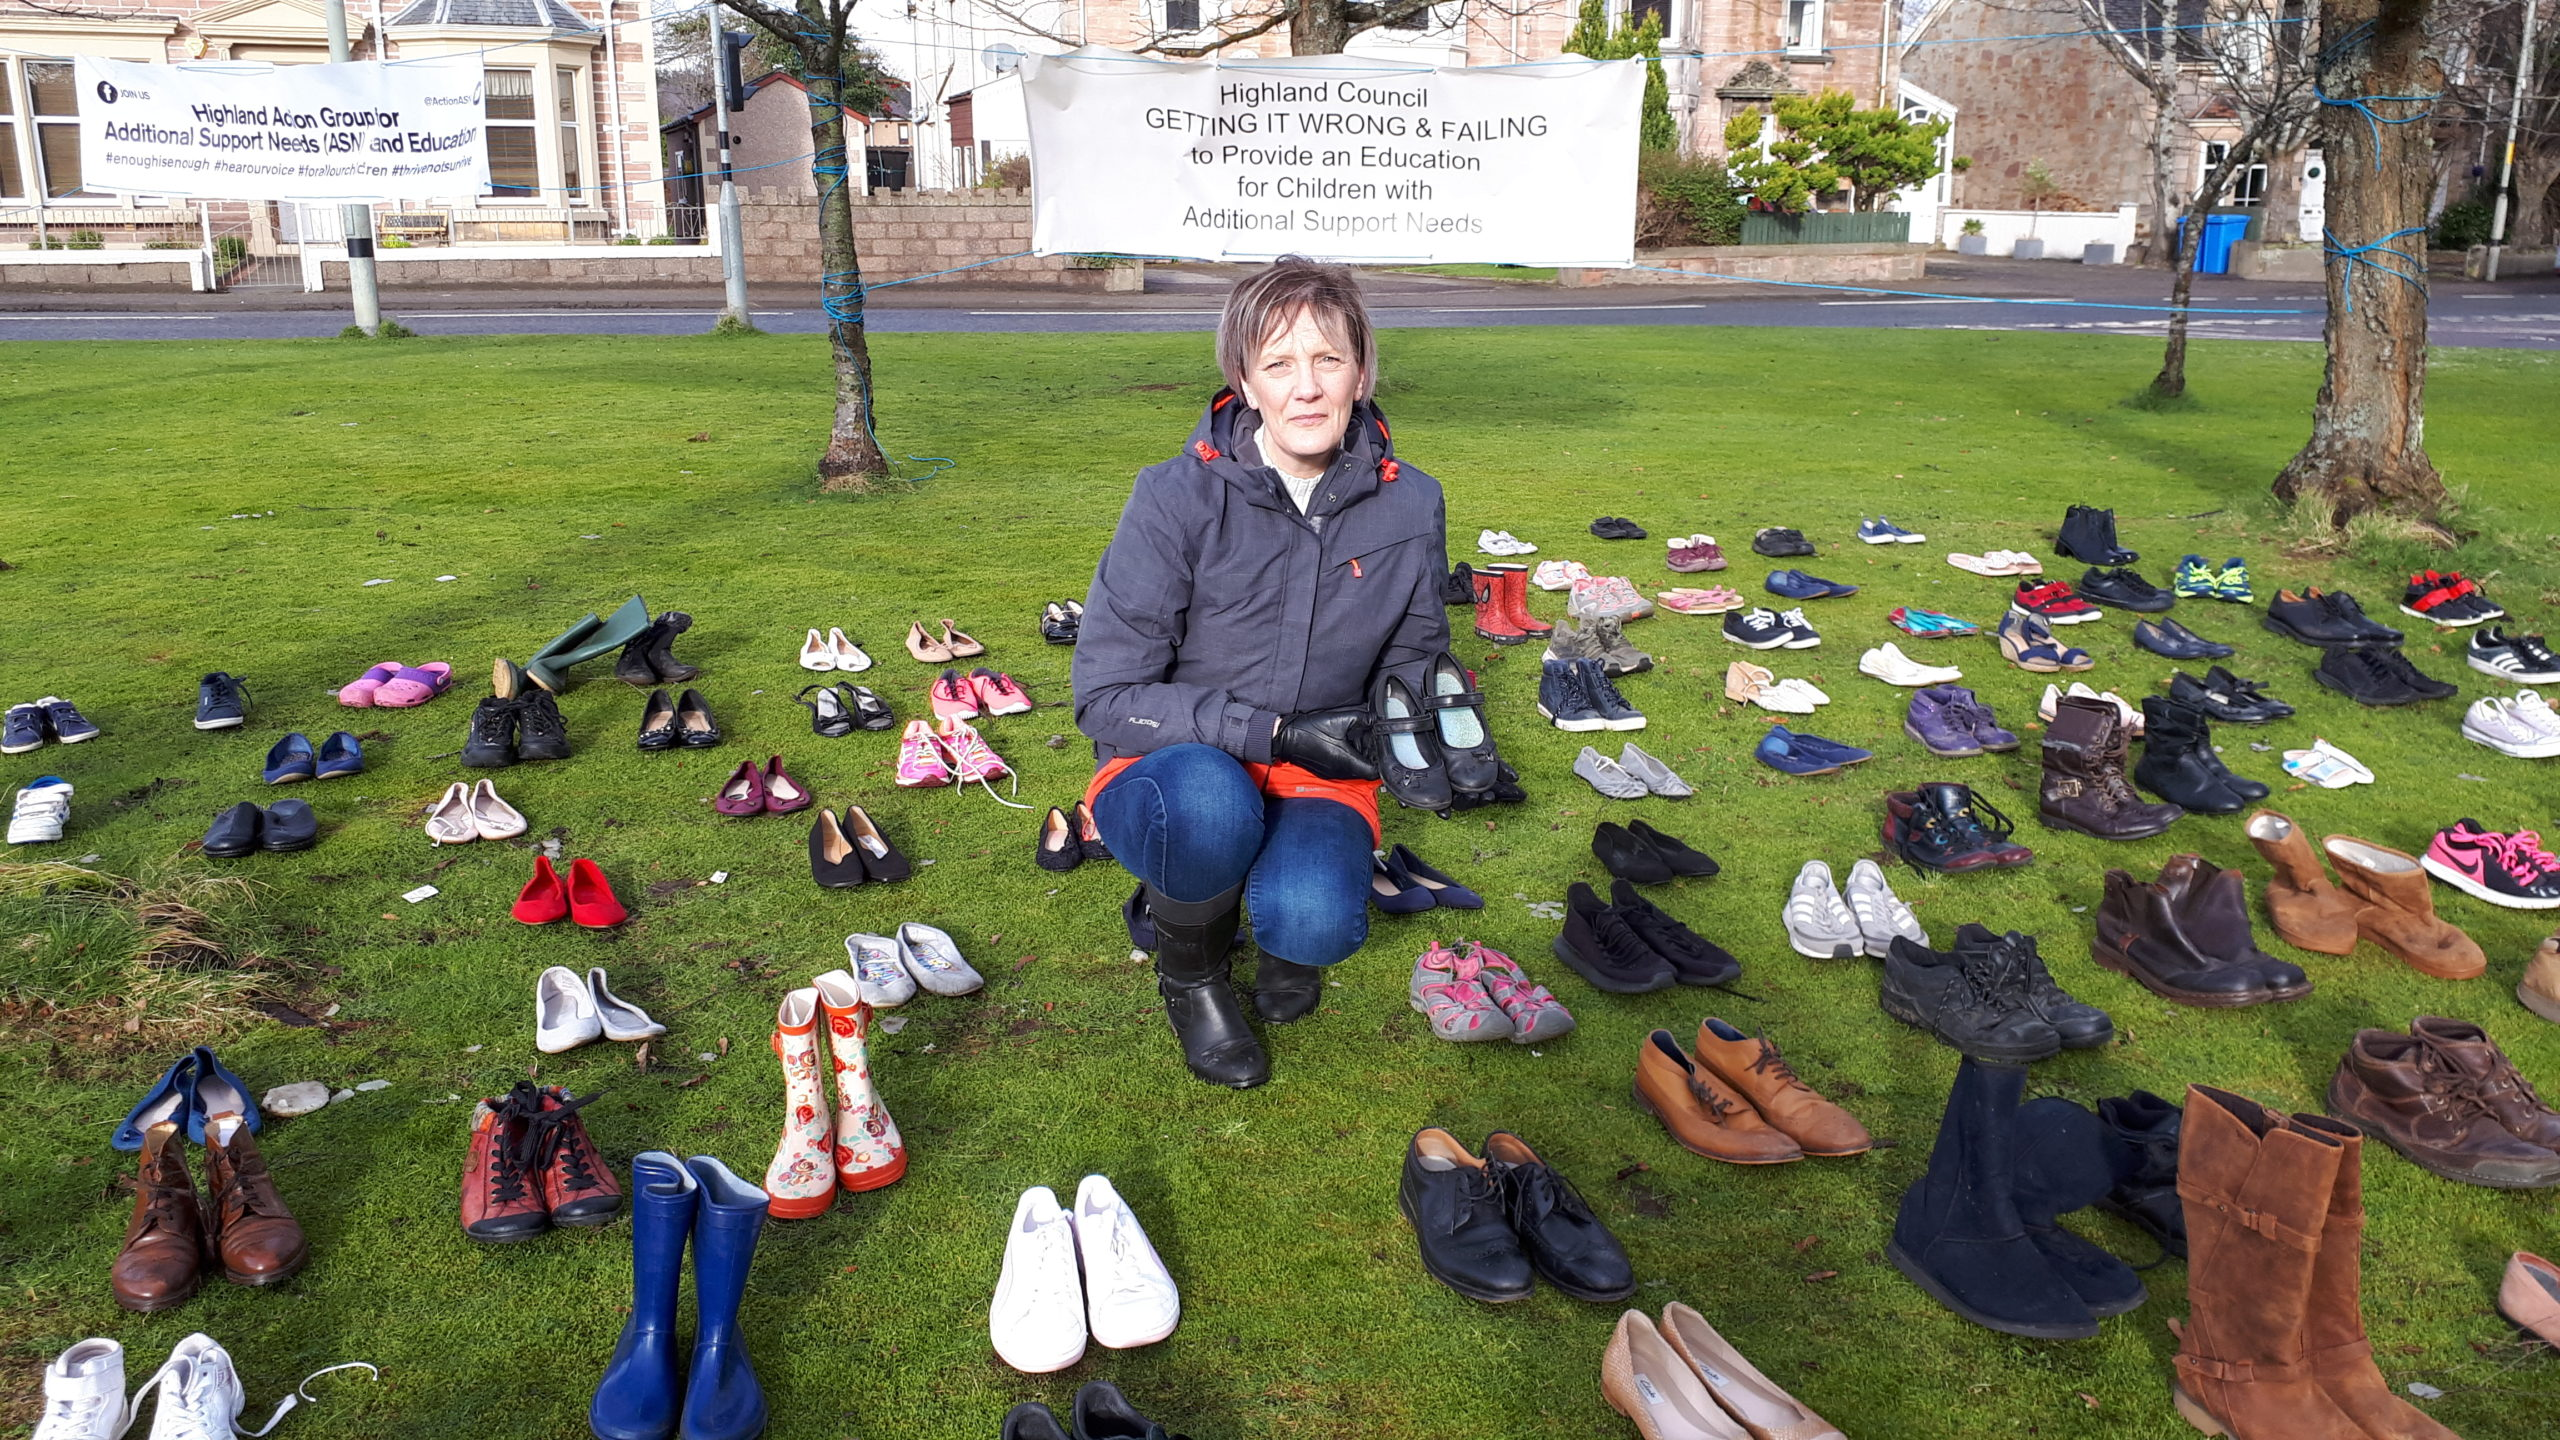 Barbara Irvine surrounded by show representing 235 children receiving less than half a full time education in Highland.